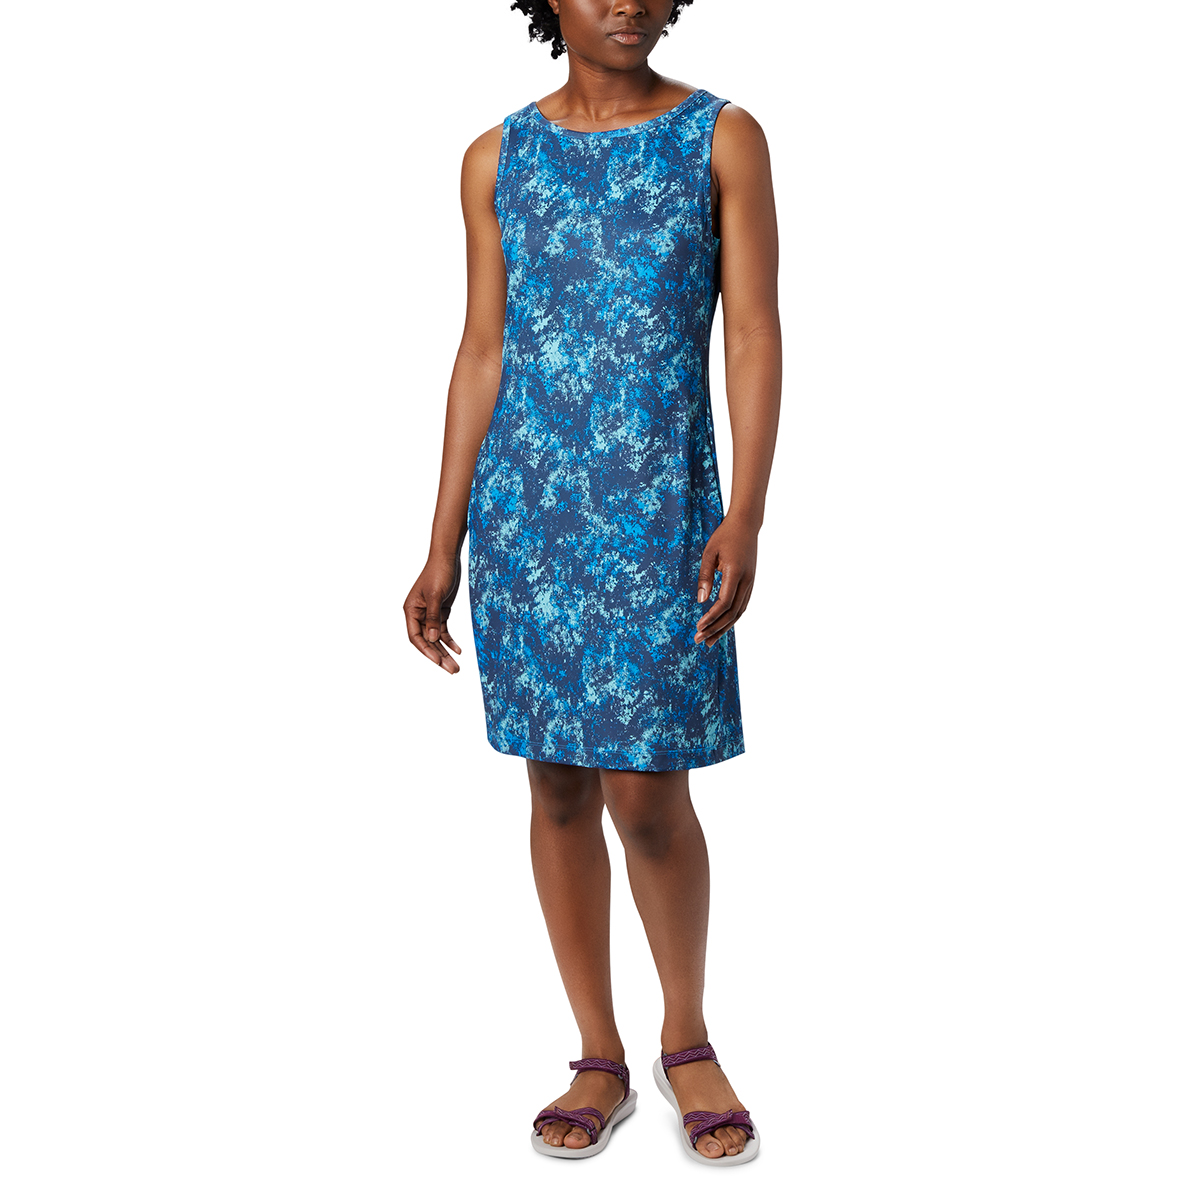 Columbia Women's Chill River Printed Dress - Blue, S